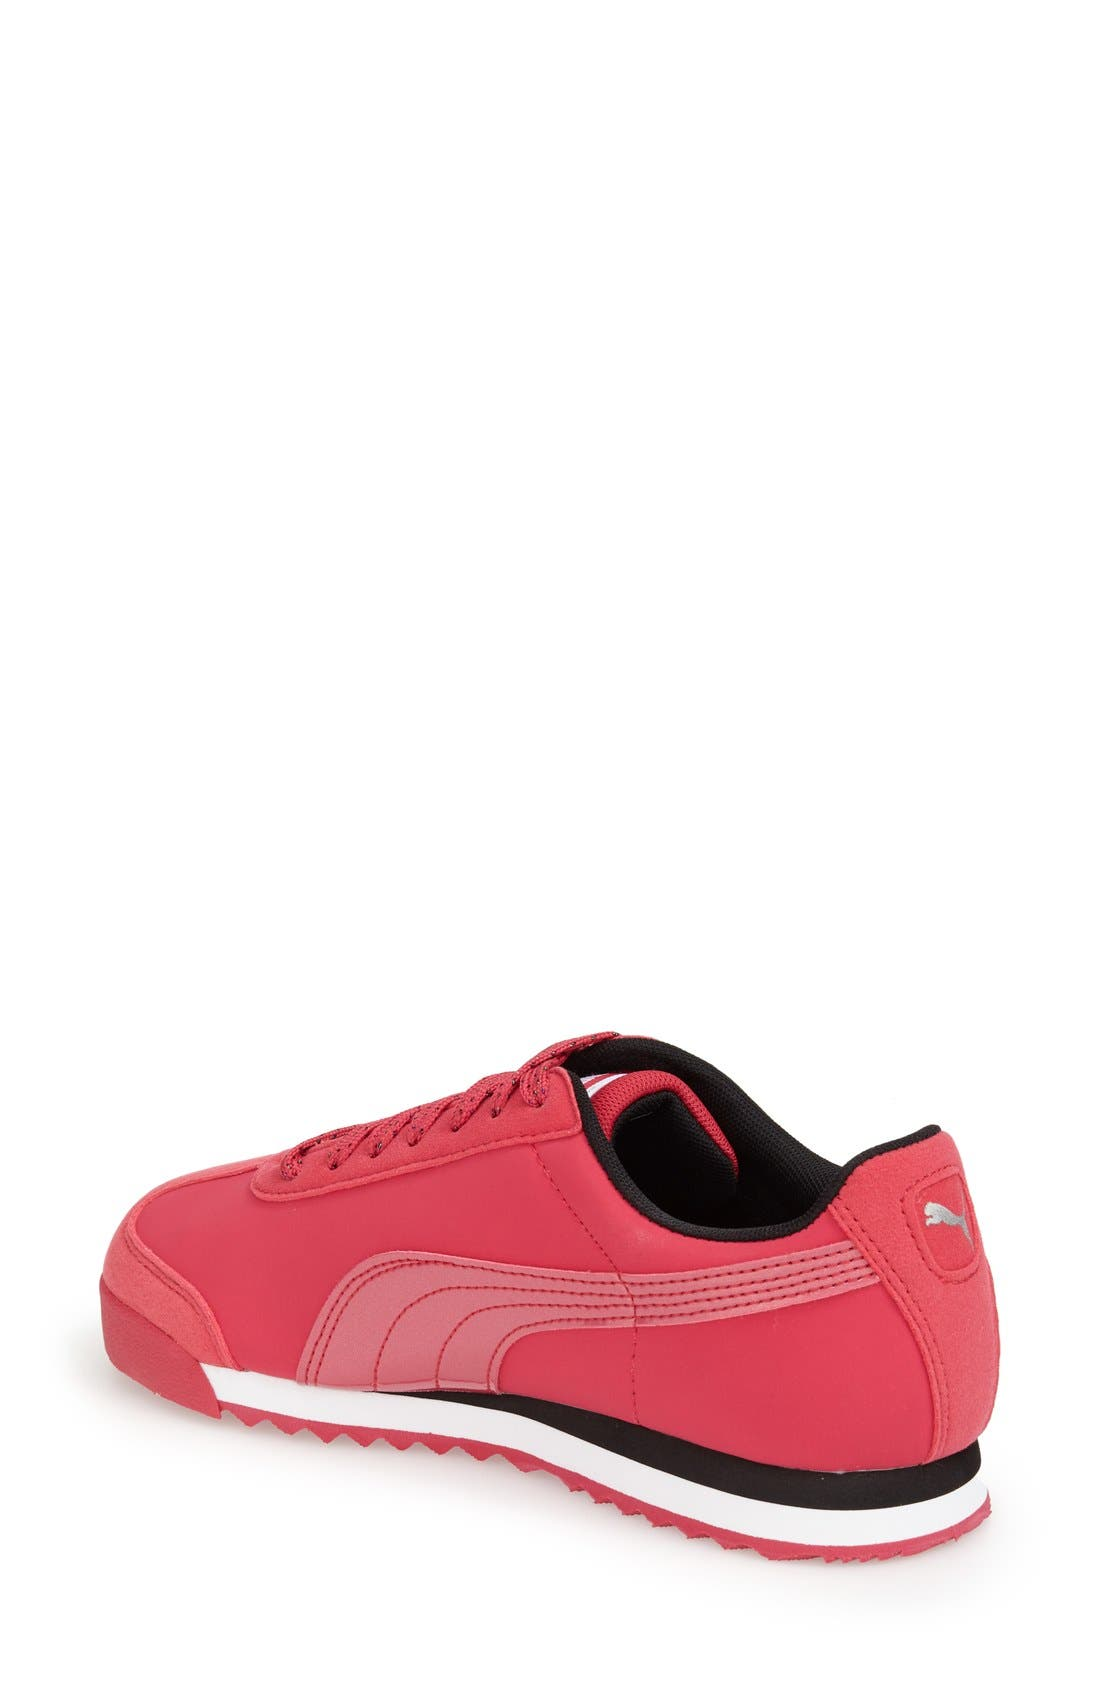 Alternate Image 2  - PUMA 'Roma' Sneaker (Women)